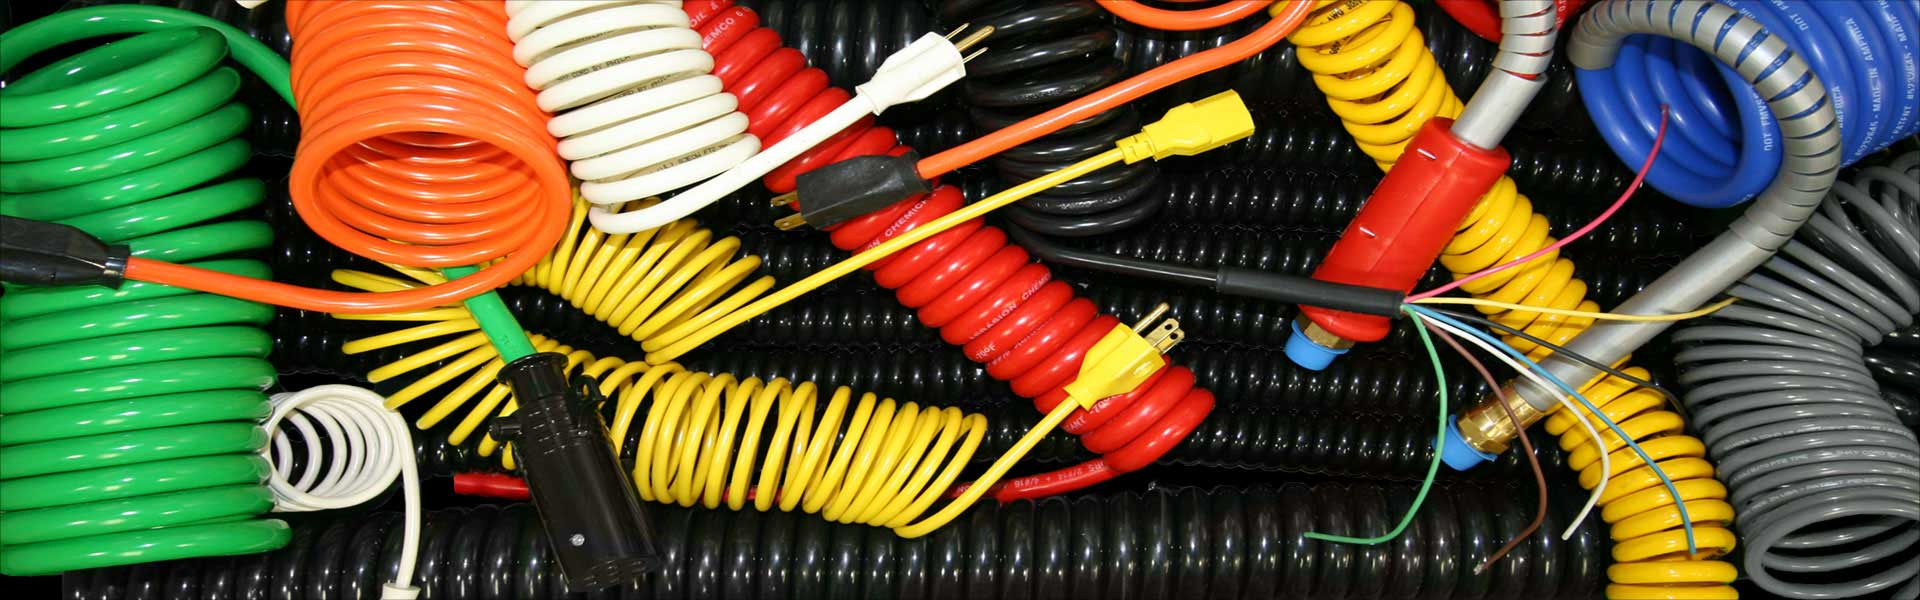 Coiled electrical Cable